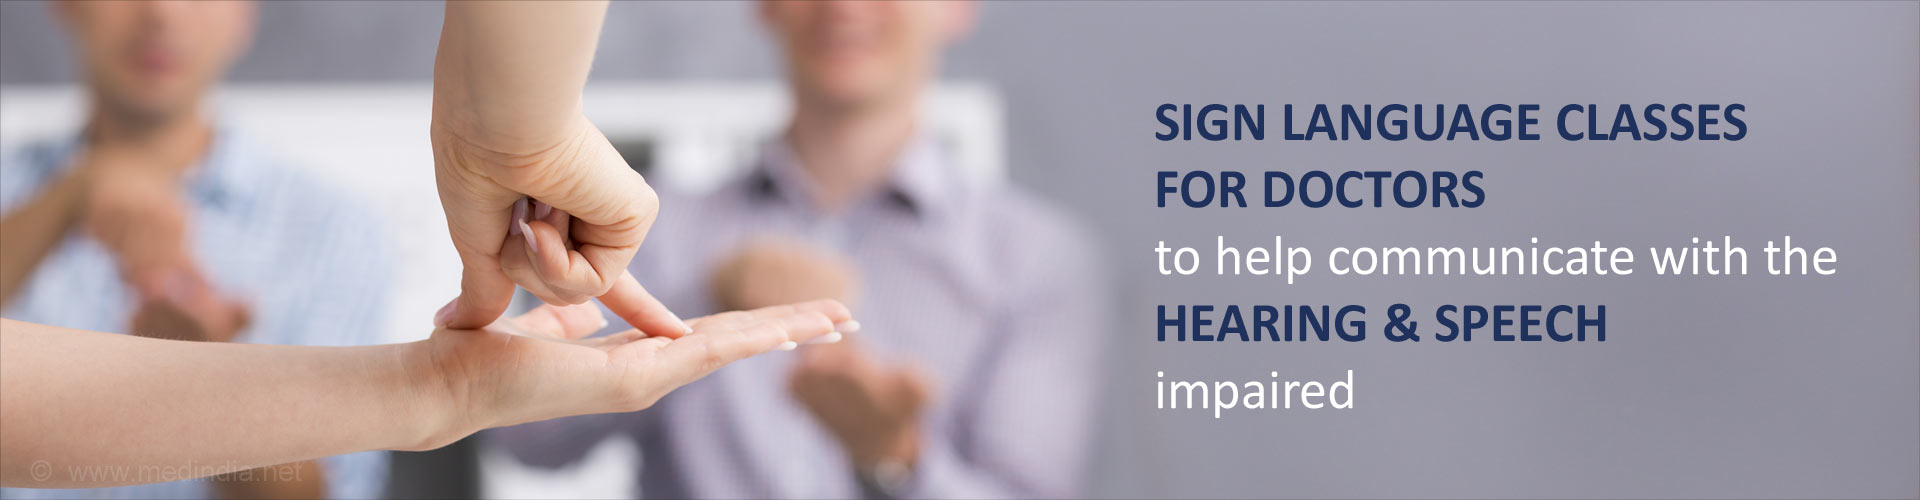 Doctors Learn Sign Language to Communicate With Hearing - Speech Impaired